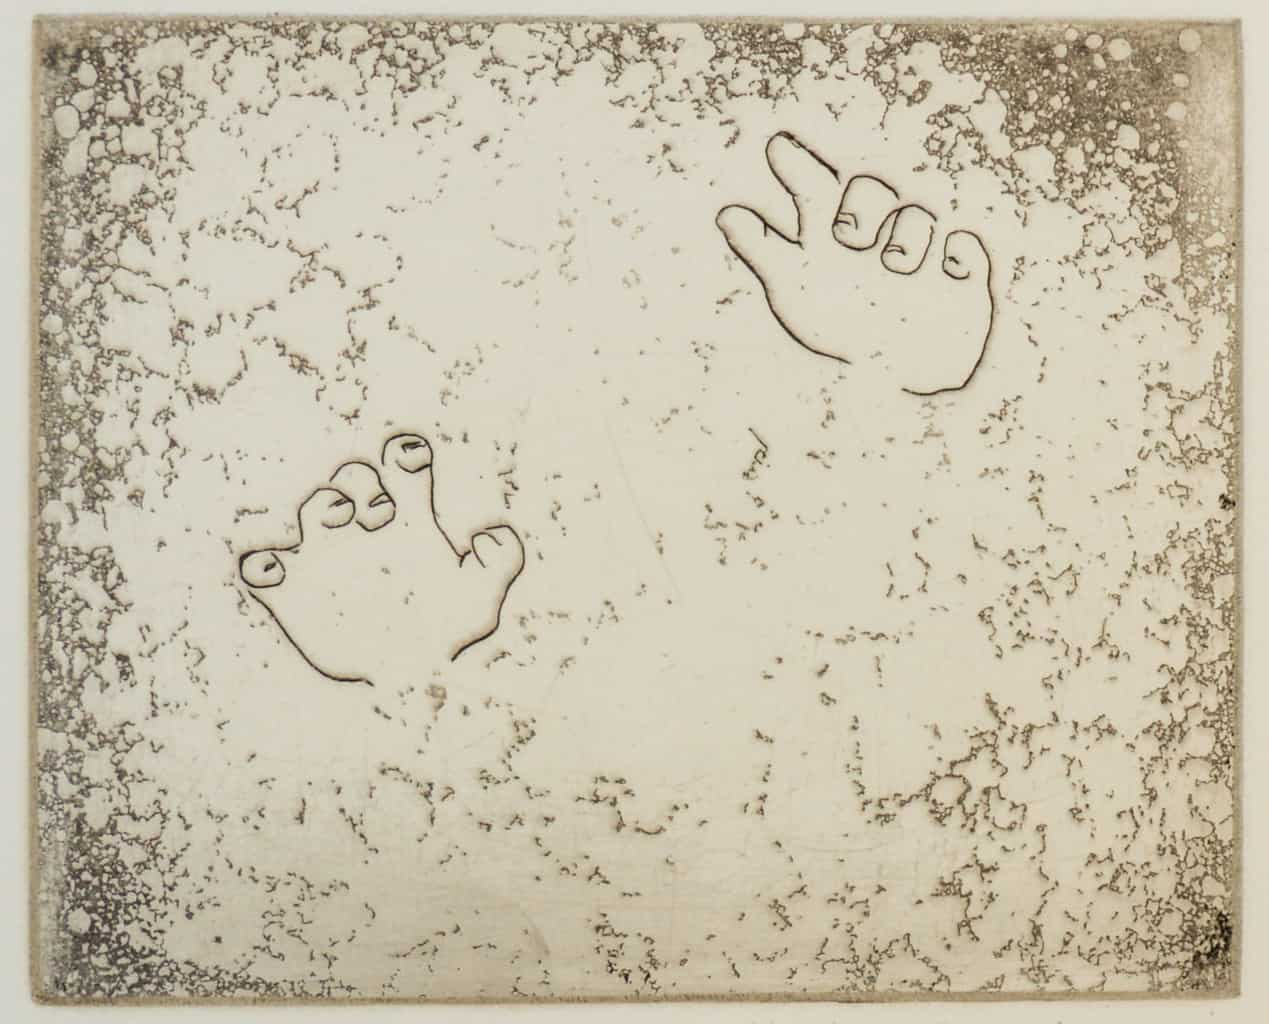 """""""Curiosity"""" - image from the """"Hands"""" series featuring various stances of gesturing hands. Original print etching by painter-printmaker Marina Kim"""